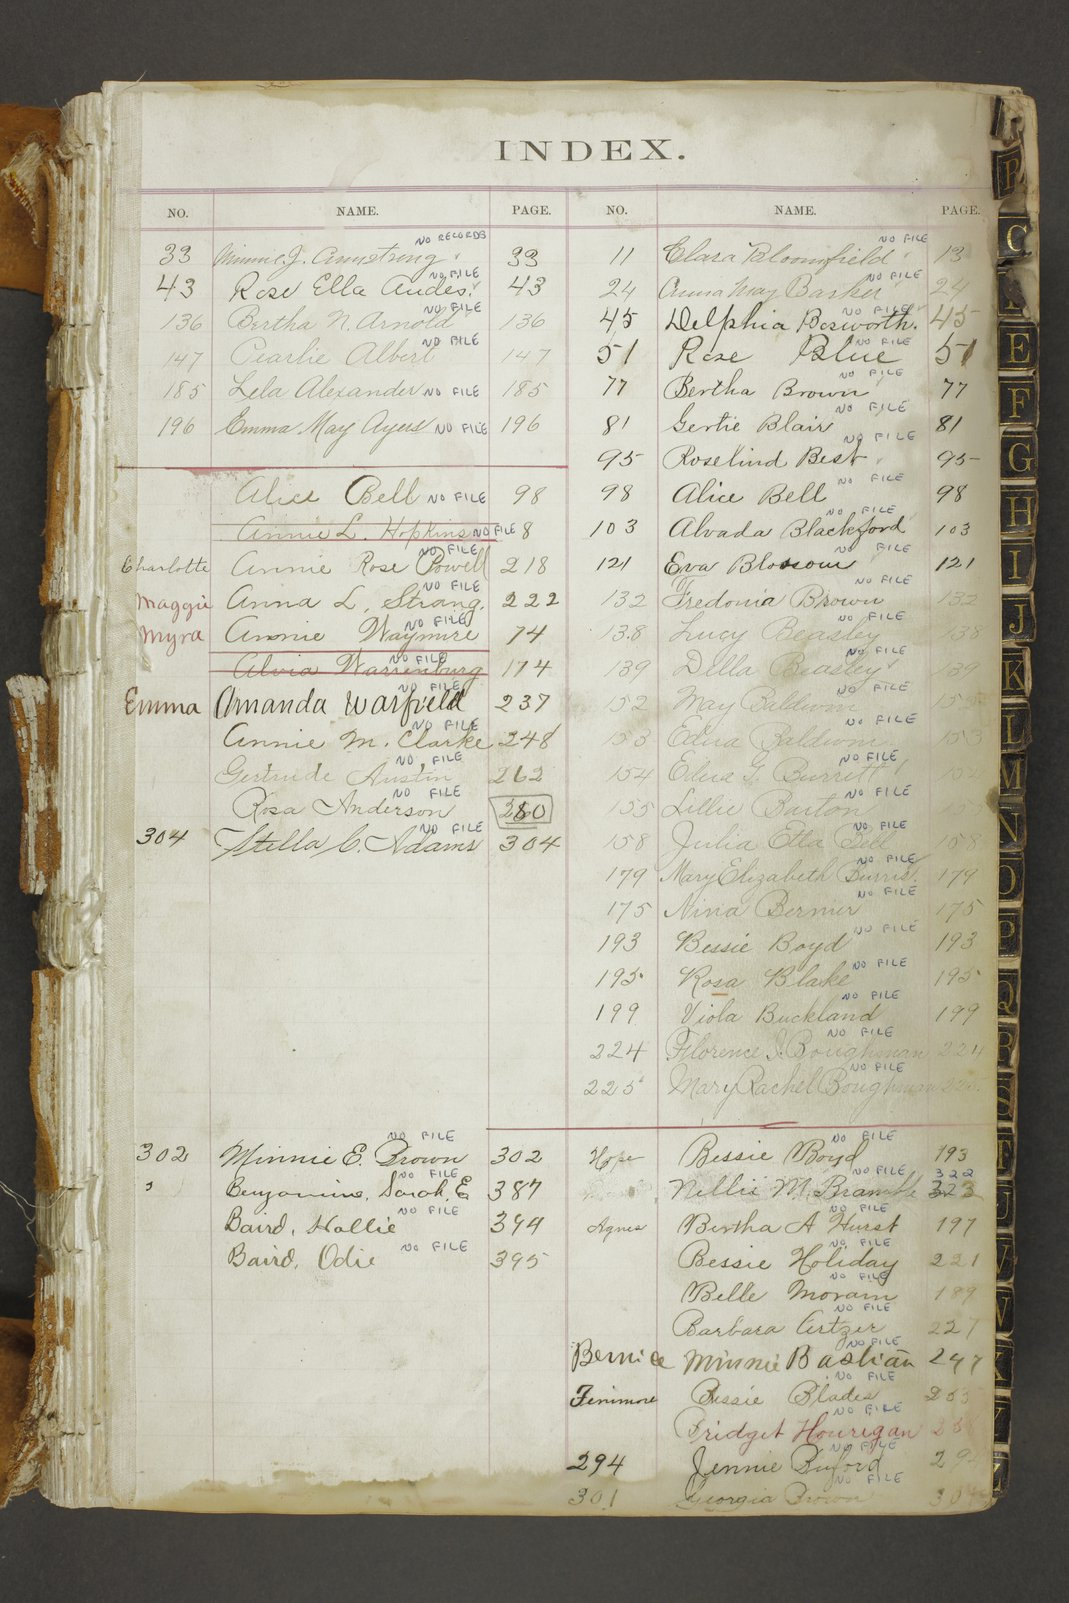 Personal histories of inmates - Volume I, Index A-B